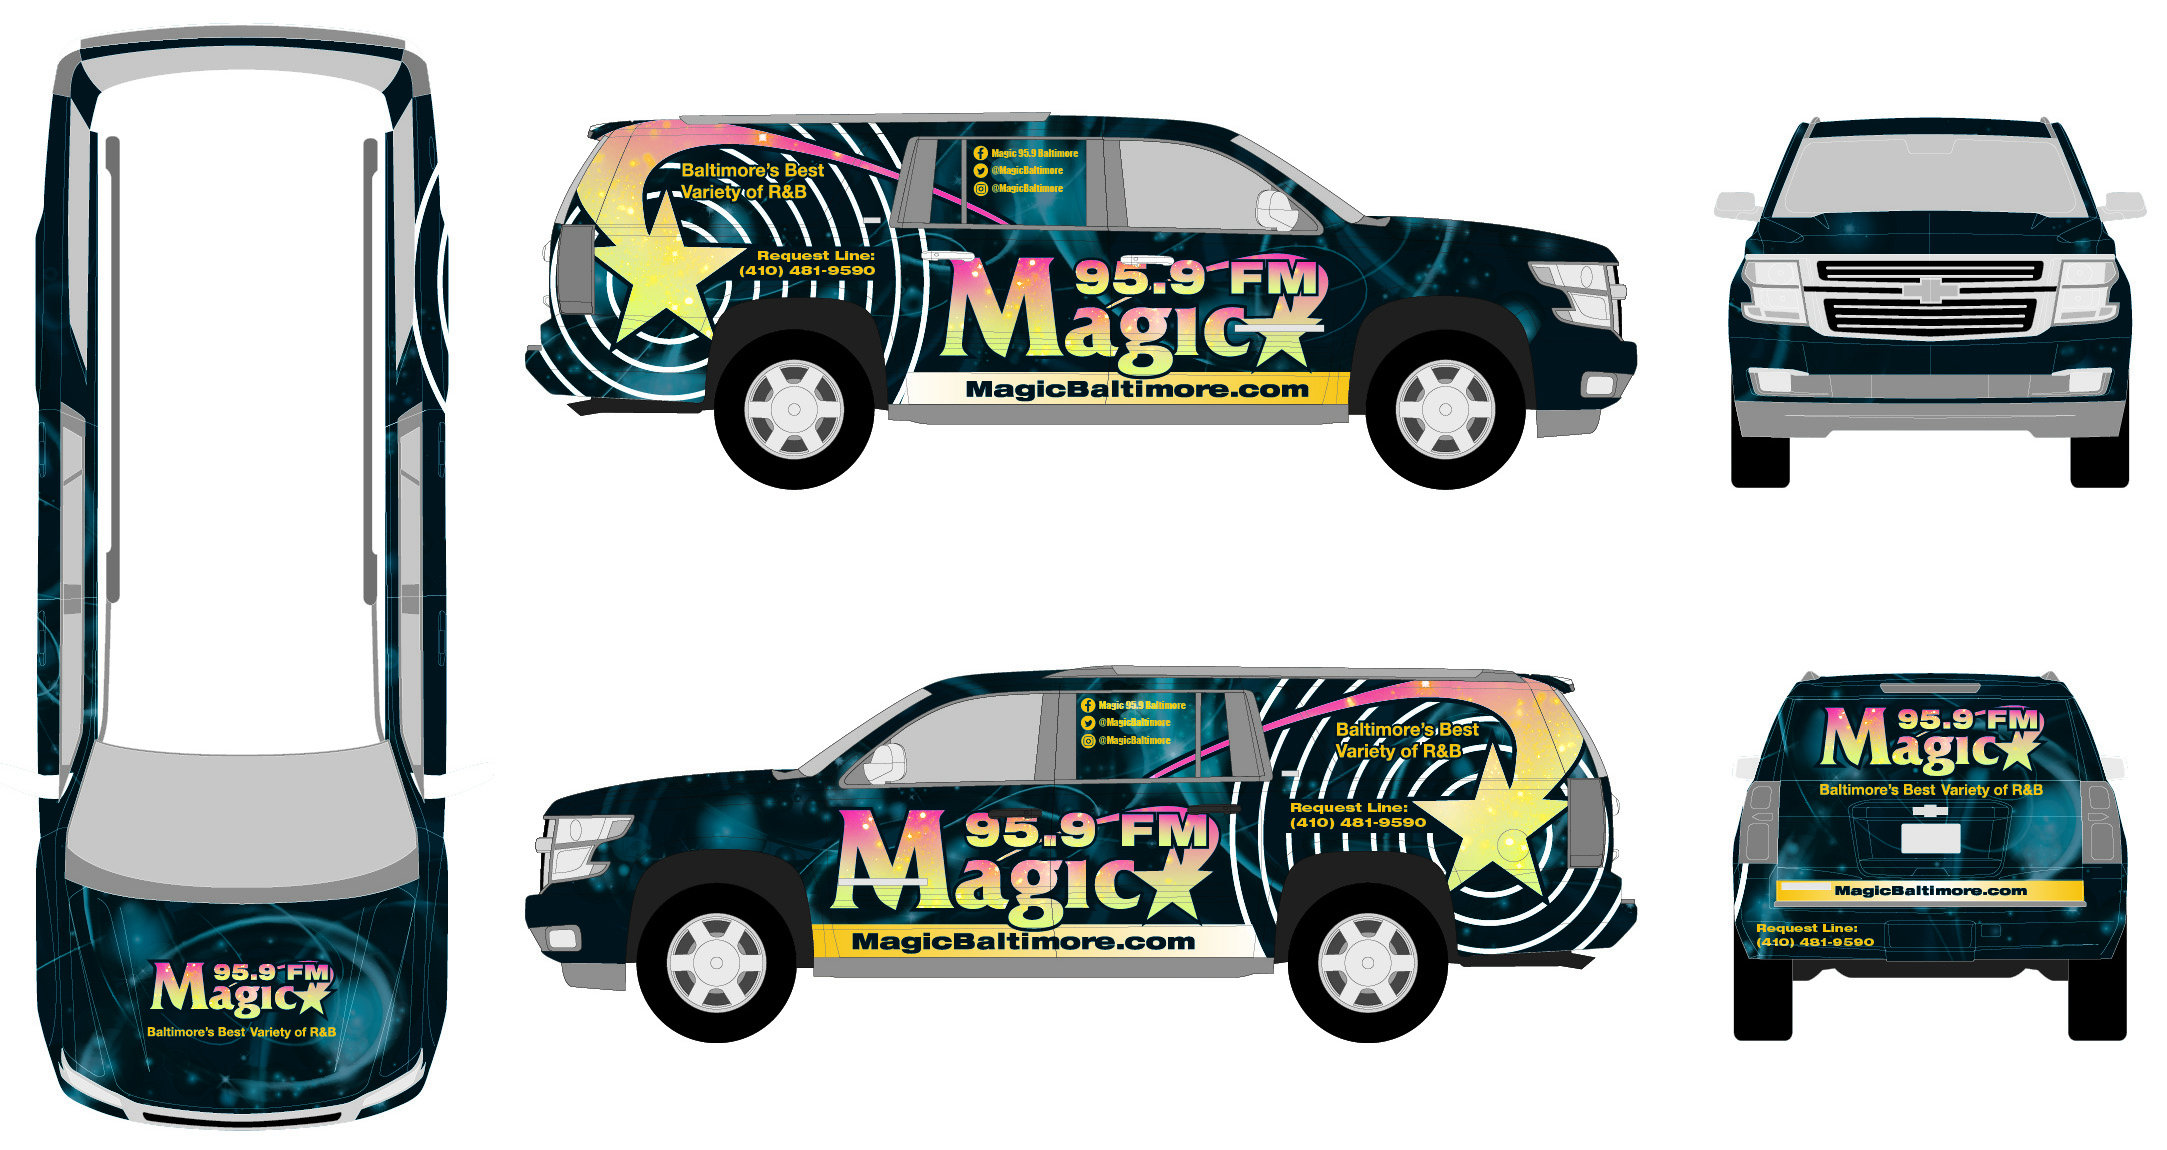 Check out our blog article on graphic design tips for vehicle wraps!